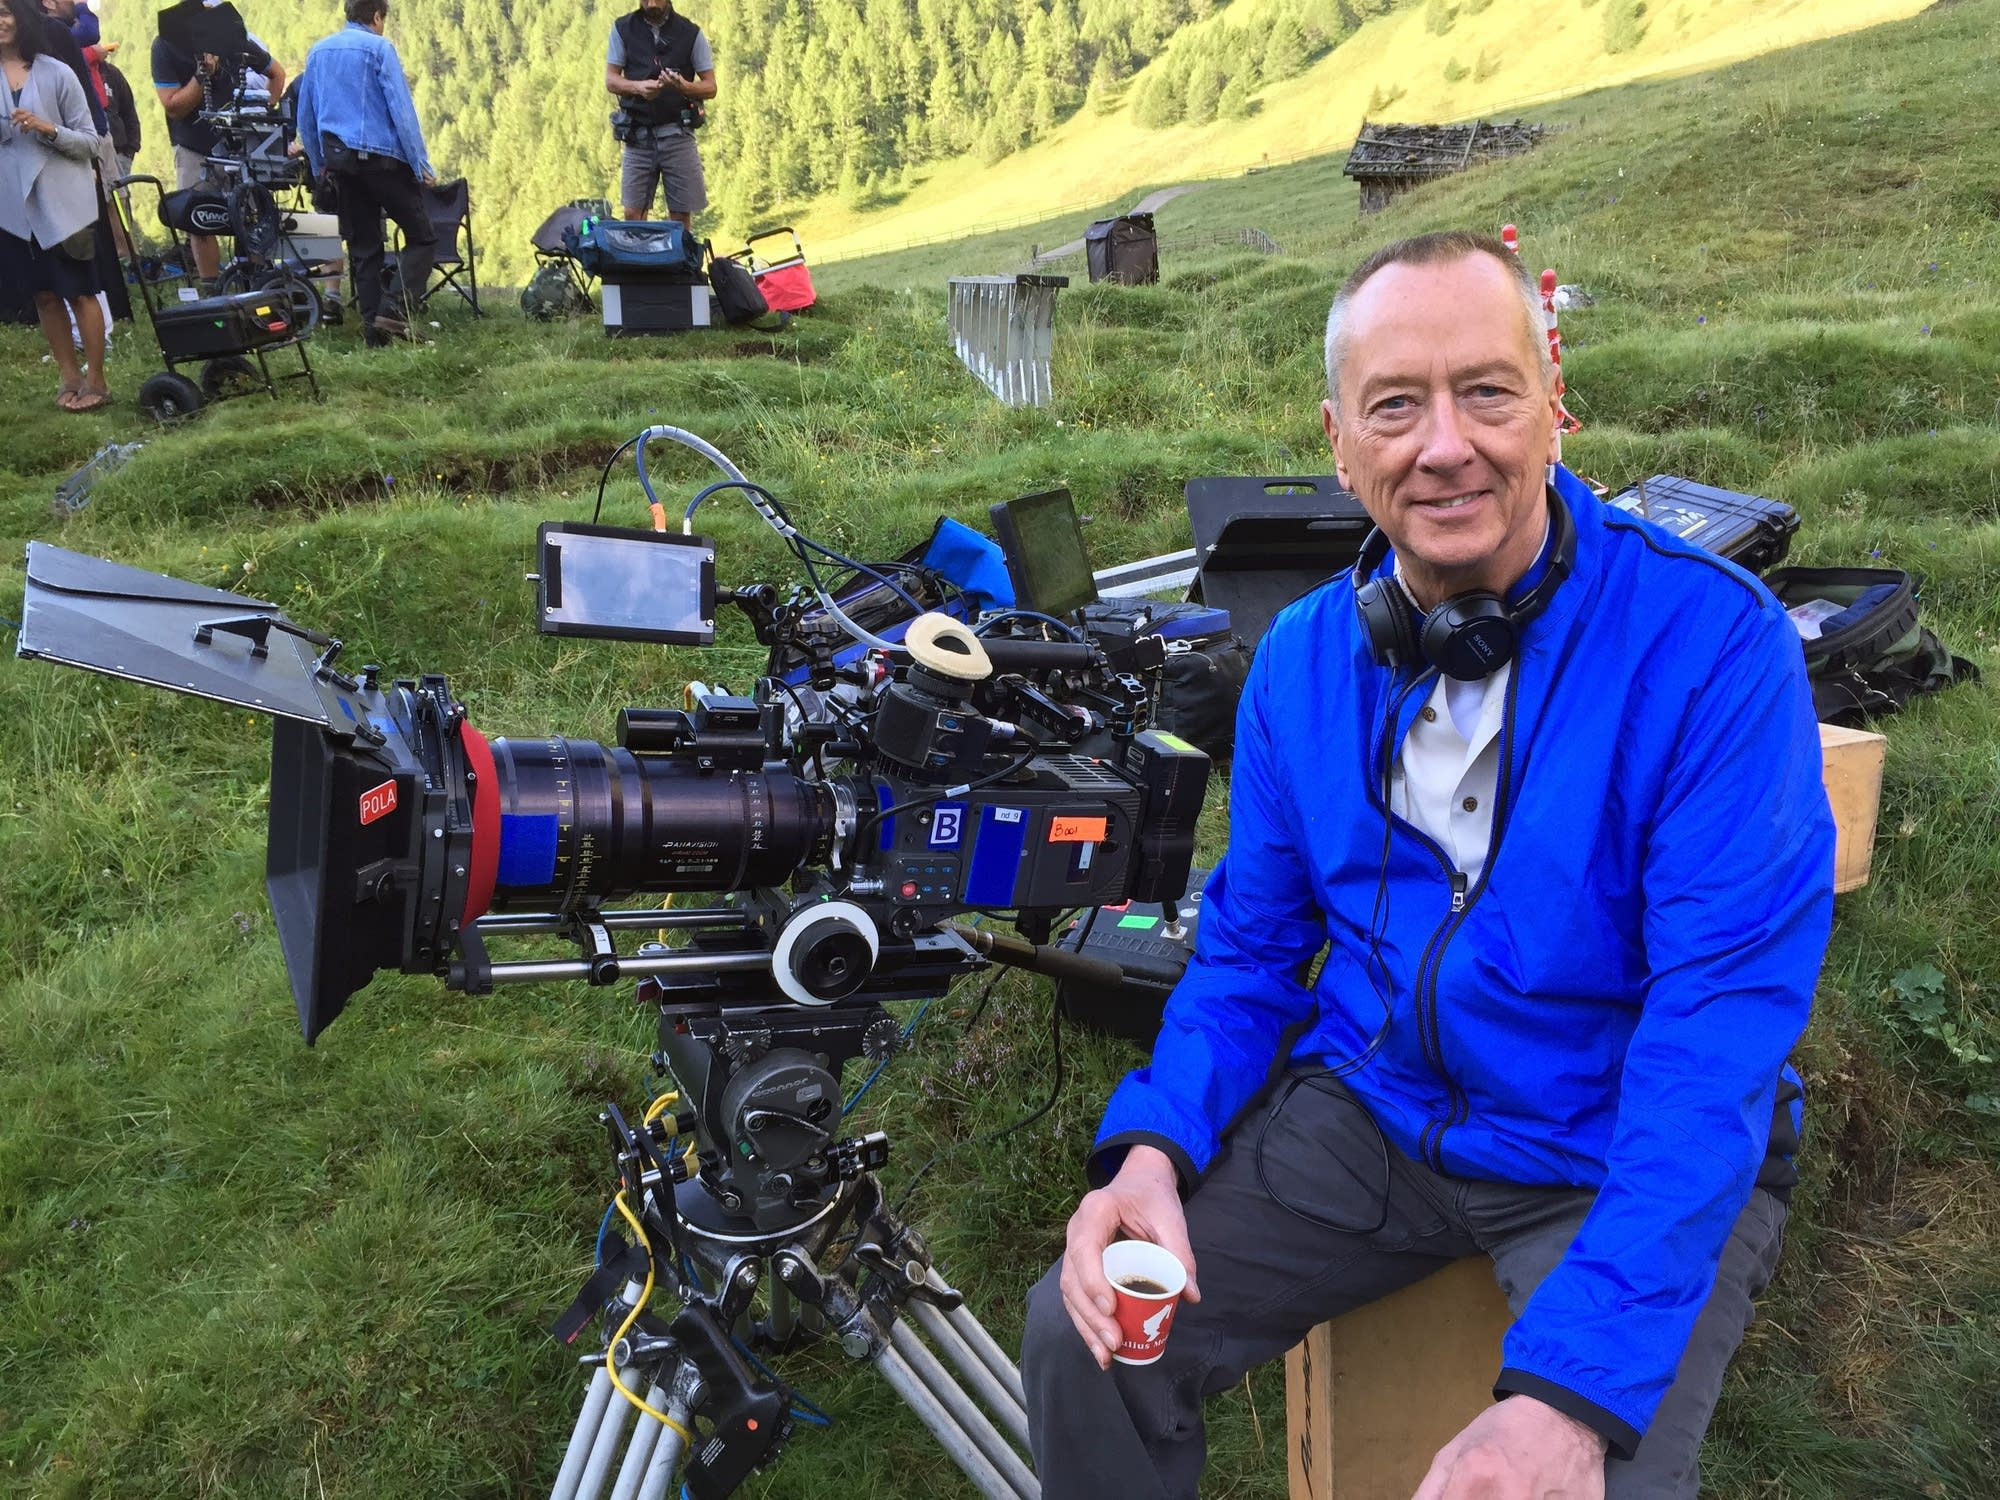 Minnesota native Barry Morrow on the set of 'Smitten!' in the Italian Alps